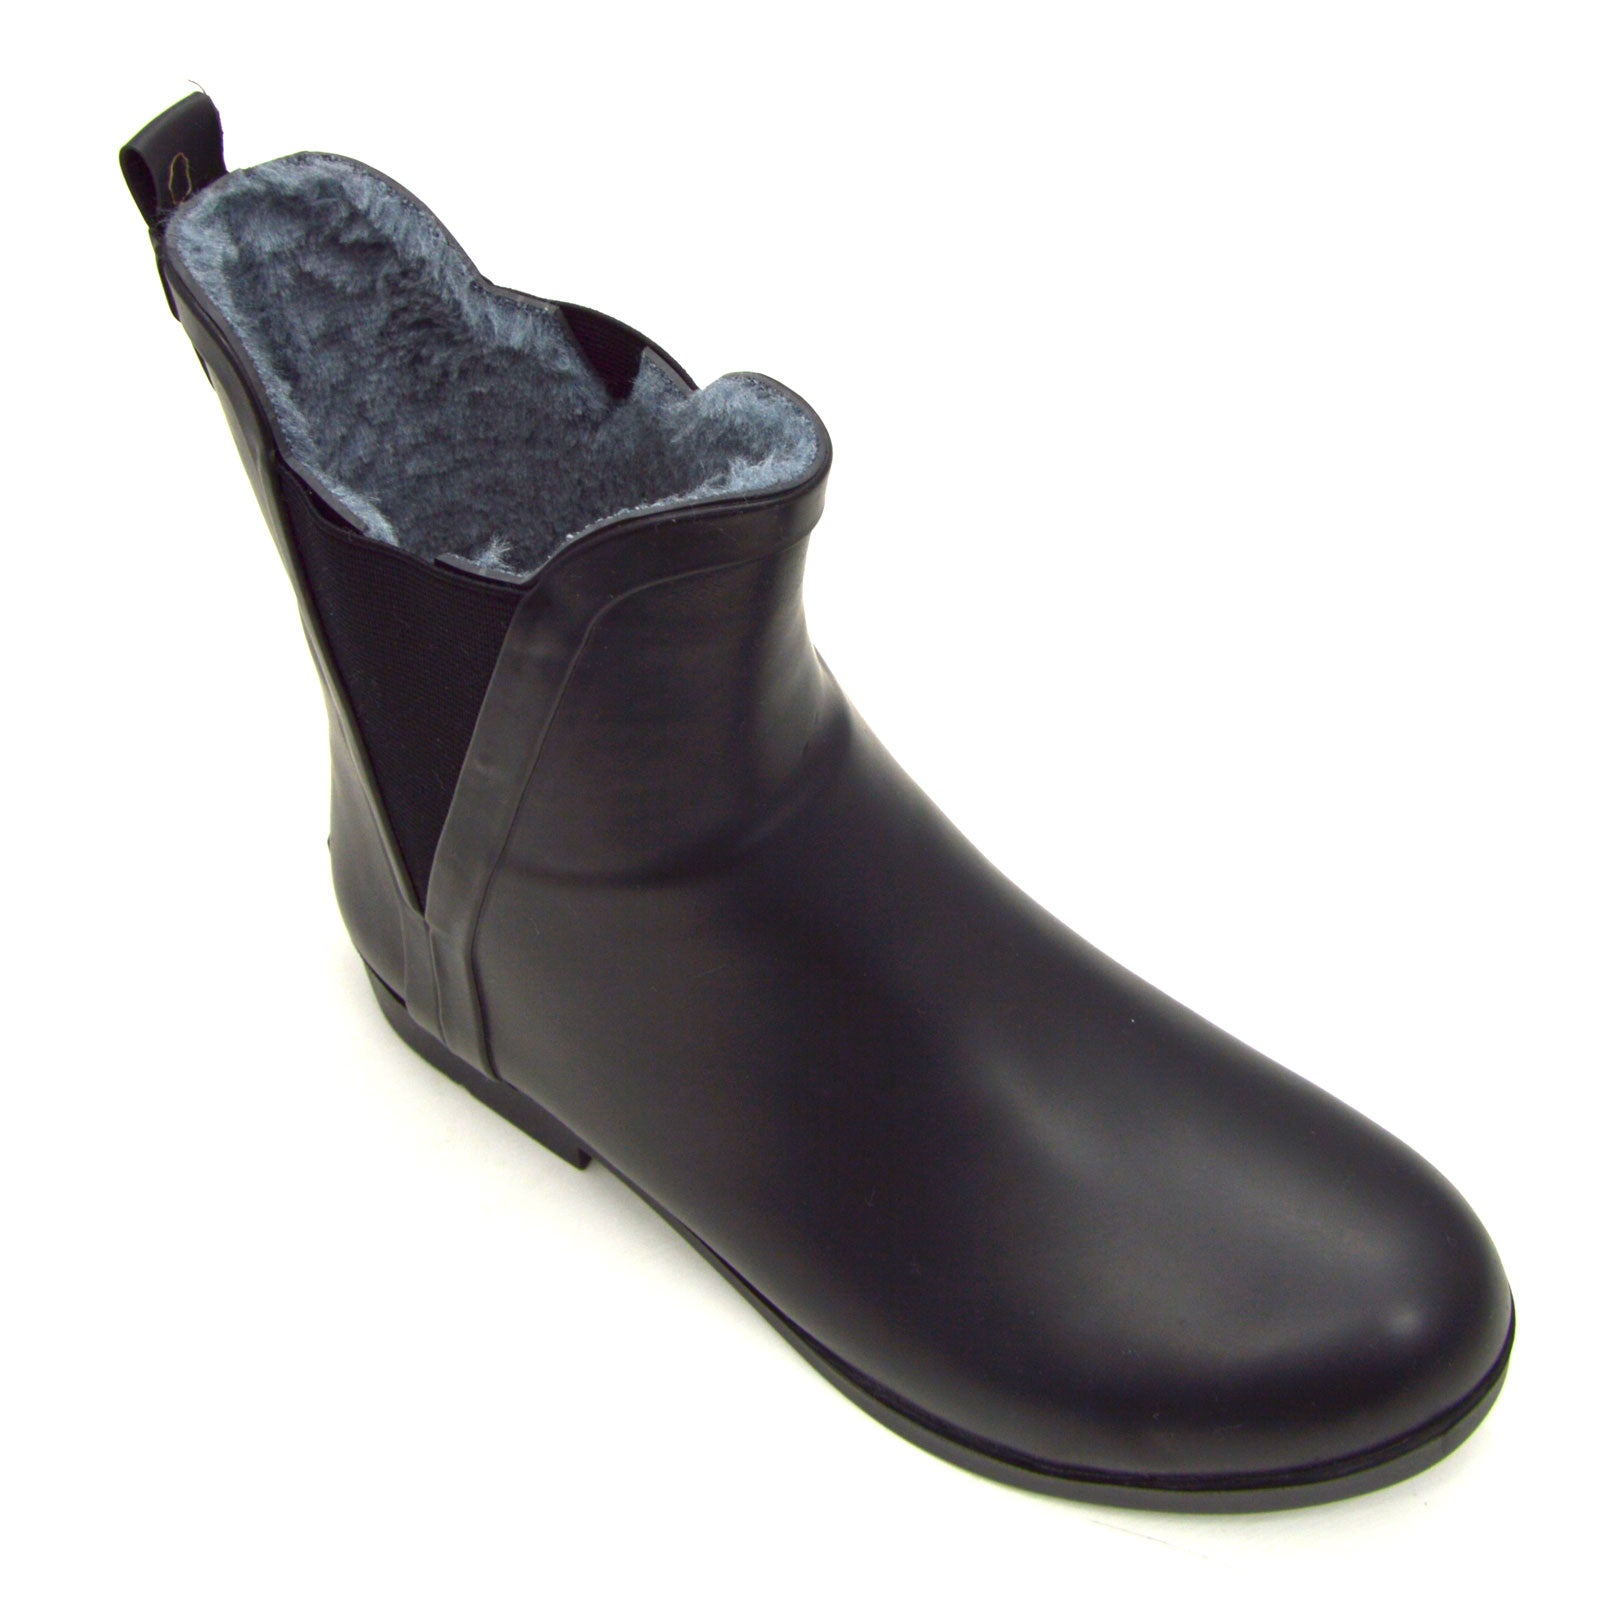 Original Fleeced Ankle Gumboots